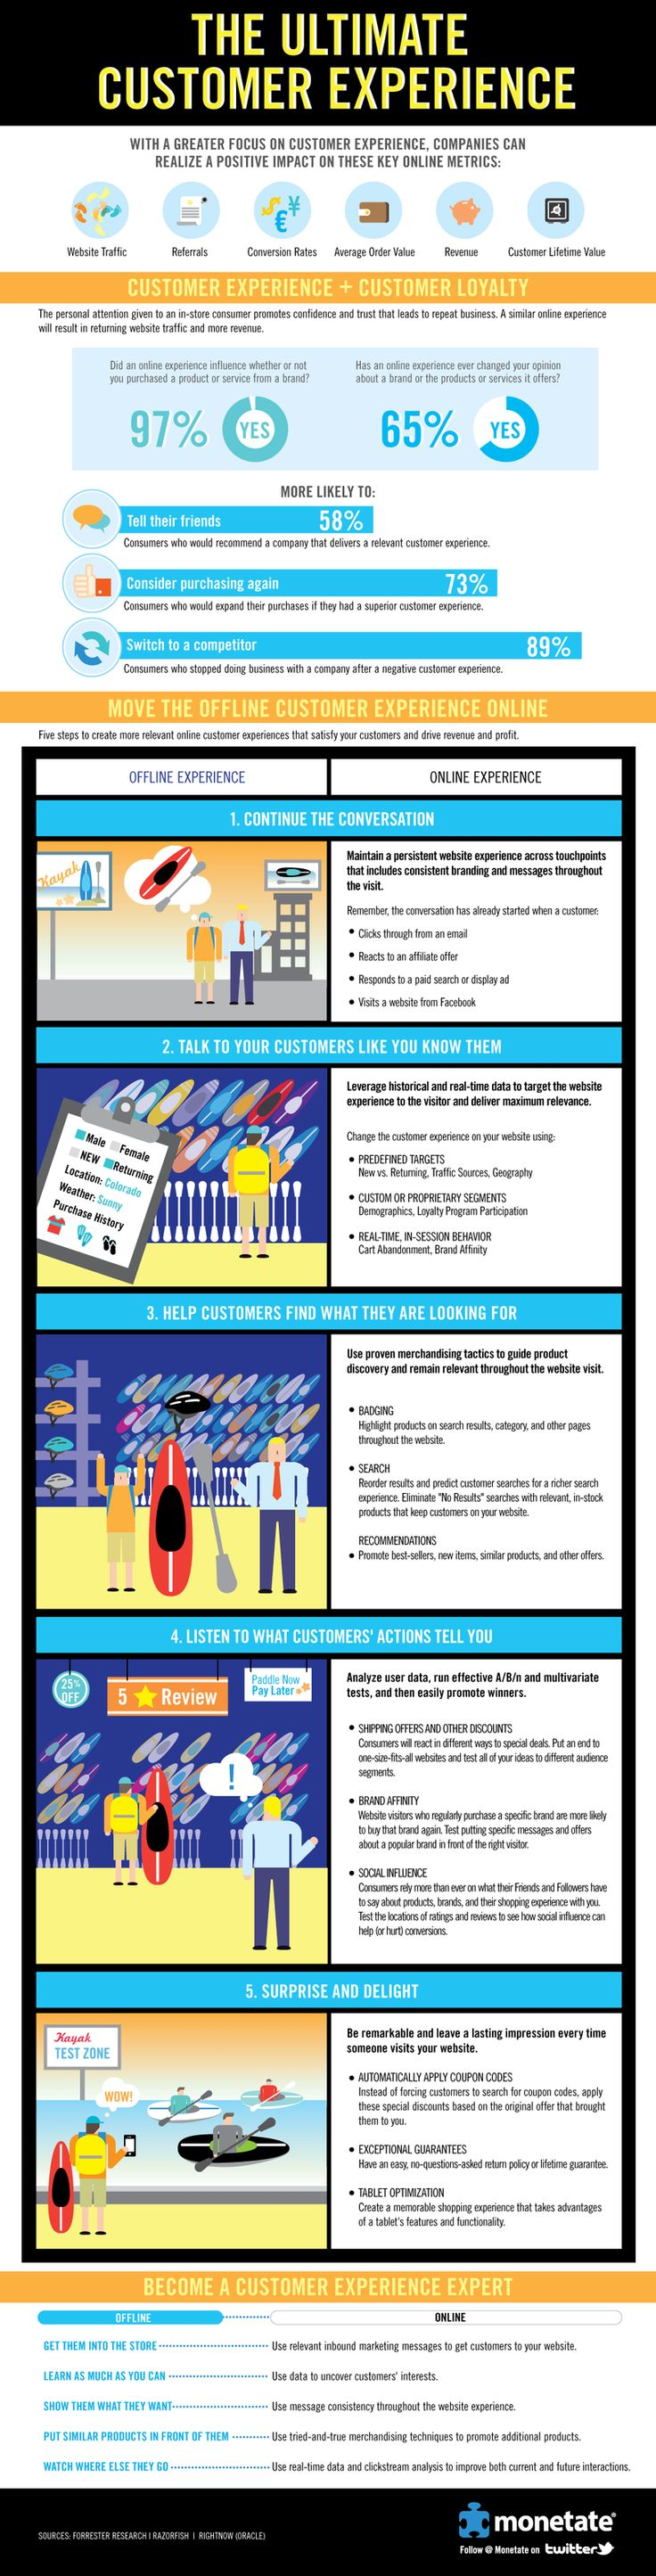 What Is The Ultimate Customer Experience? #infographic